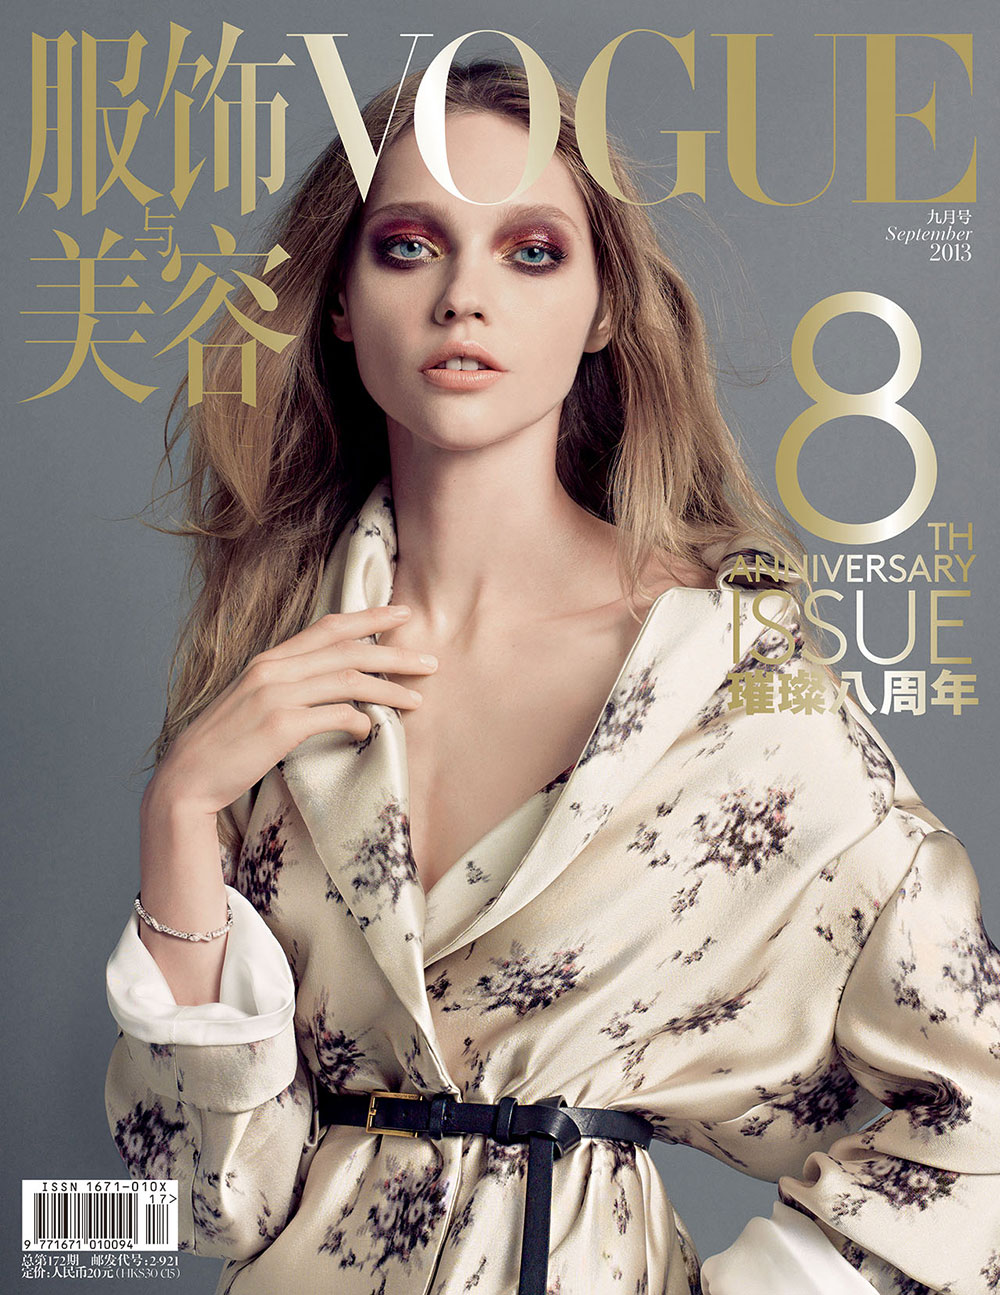 Vogue China September 2013 covers exclusive preview ...